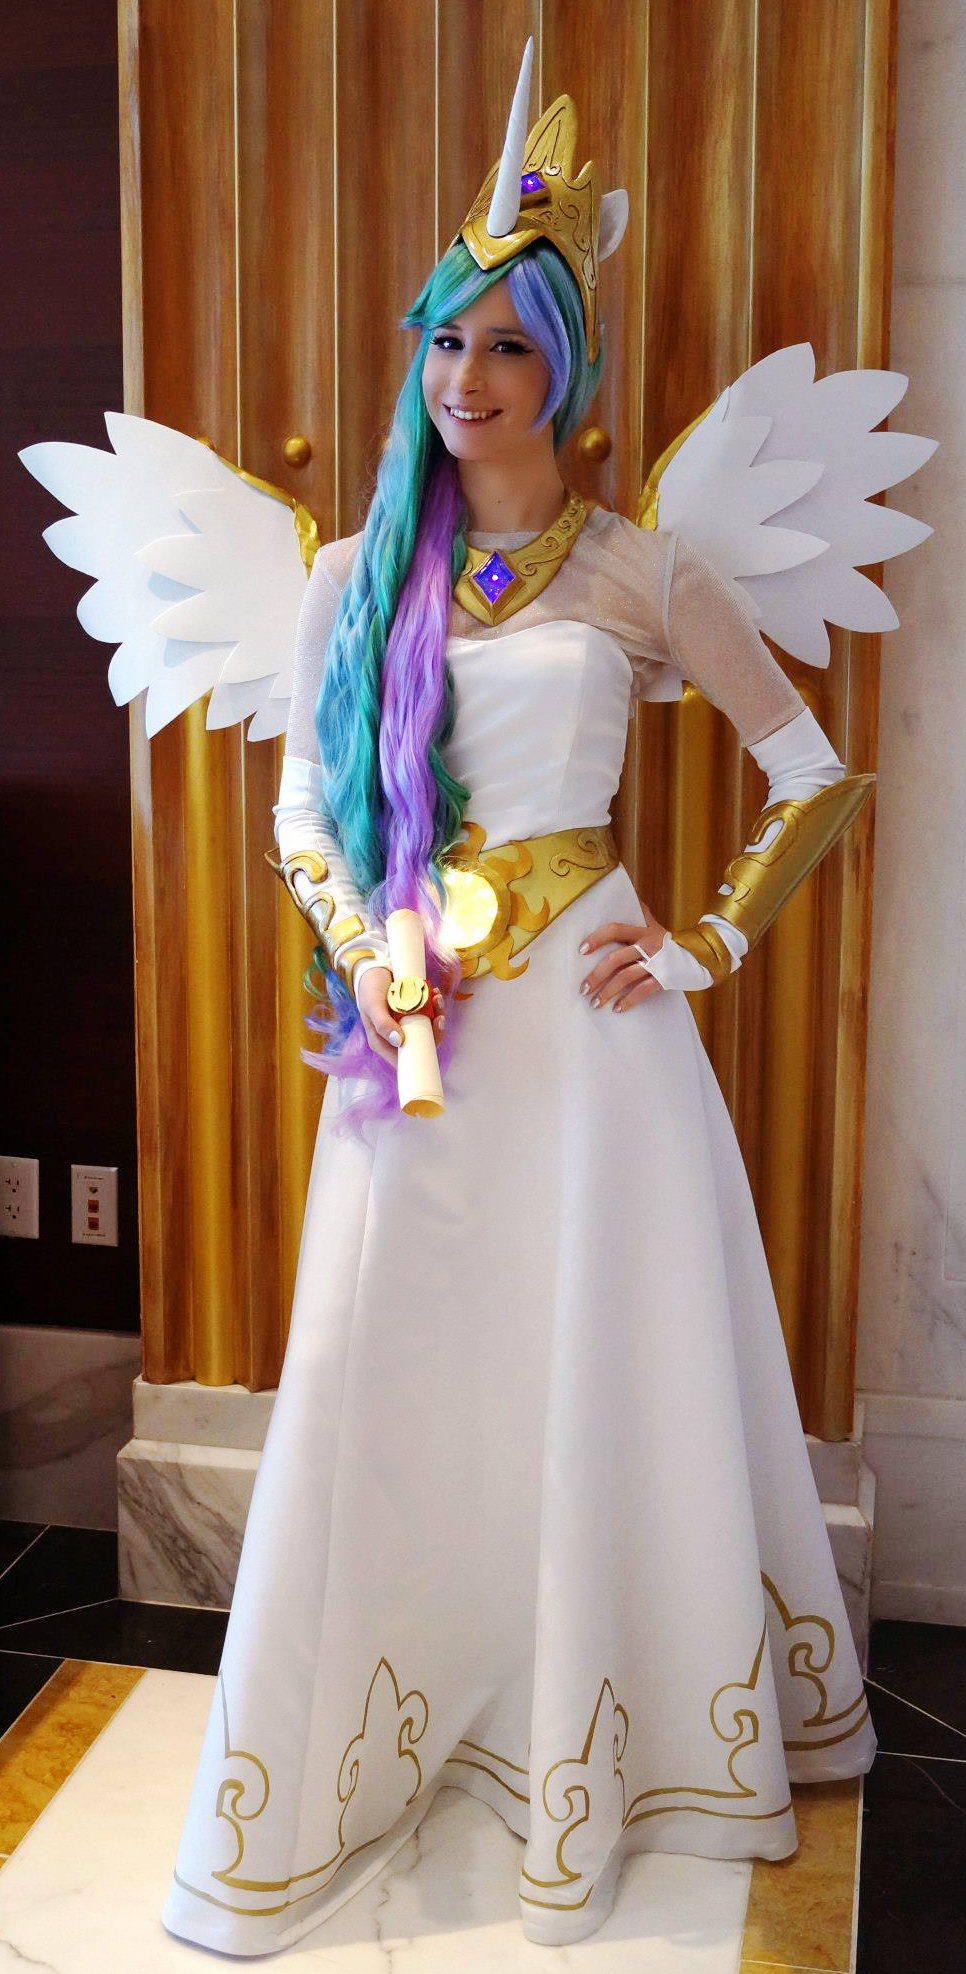 Princess Celestia at Katsucon 19 by littlekiddens